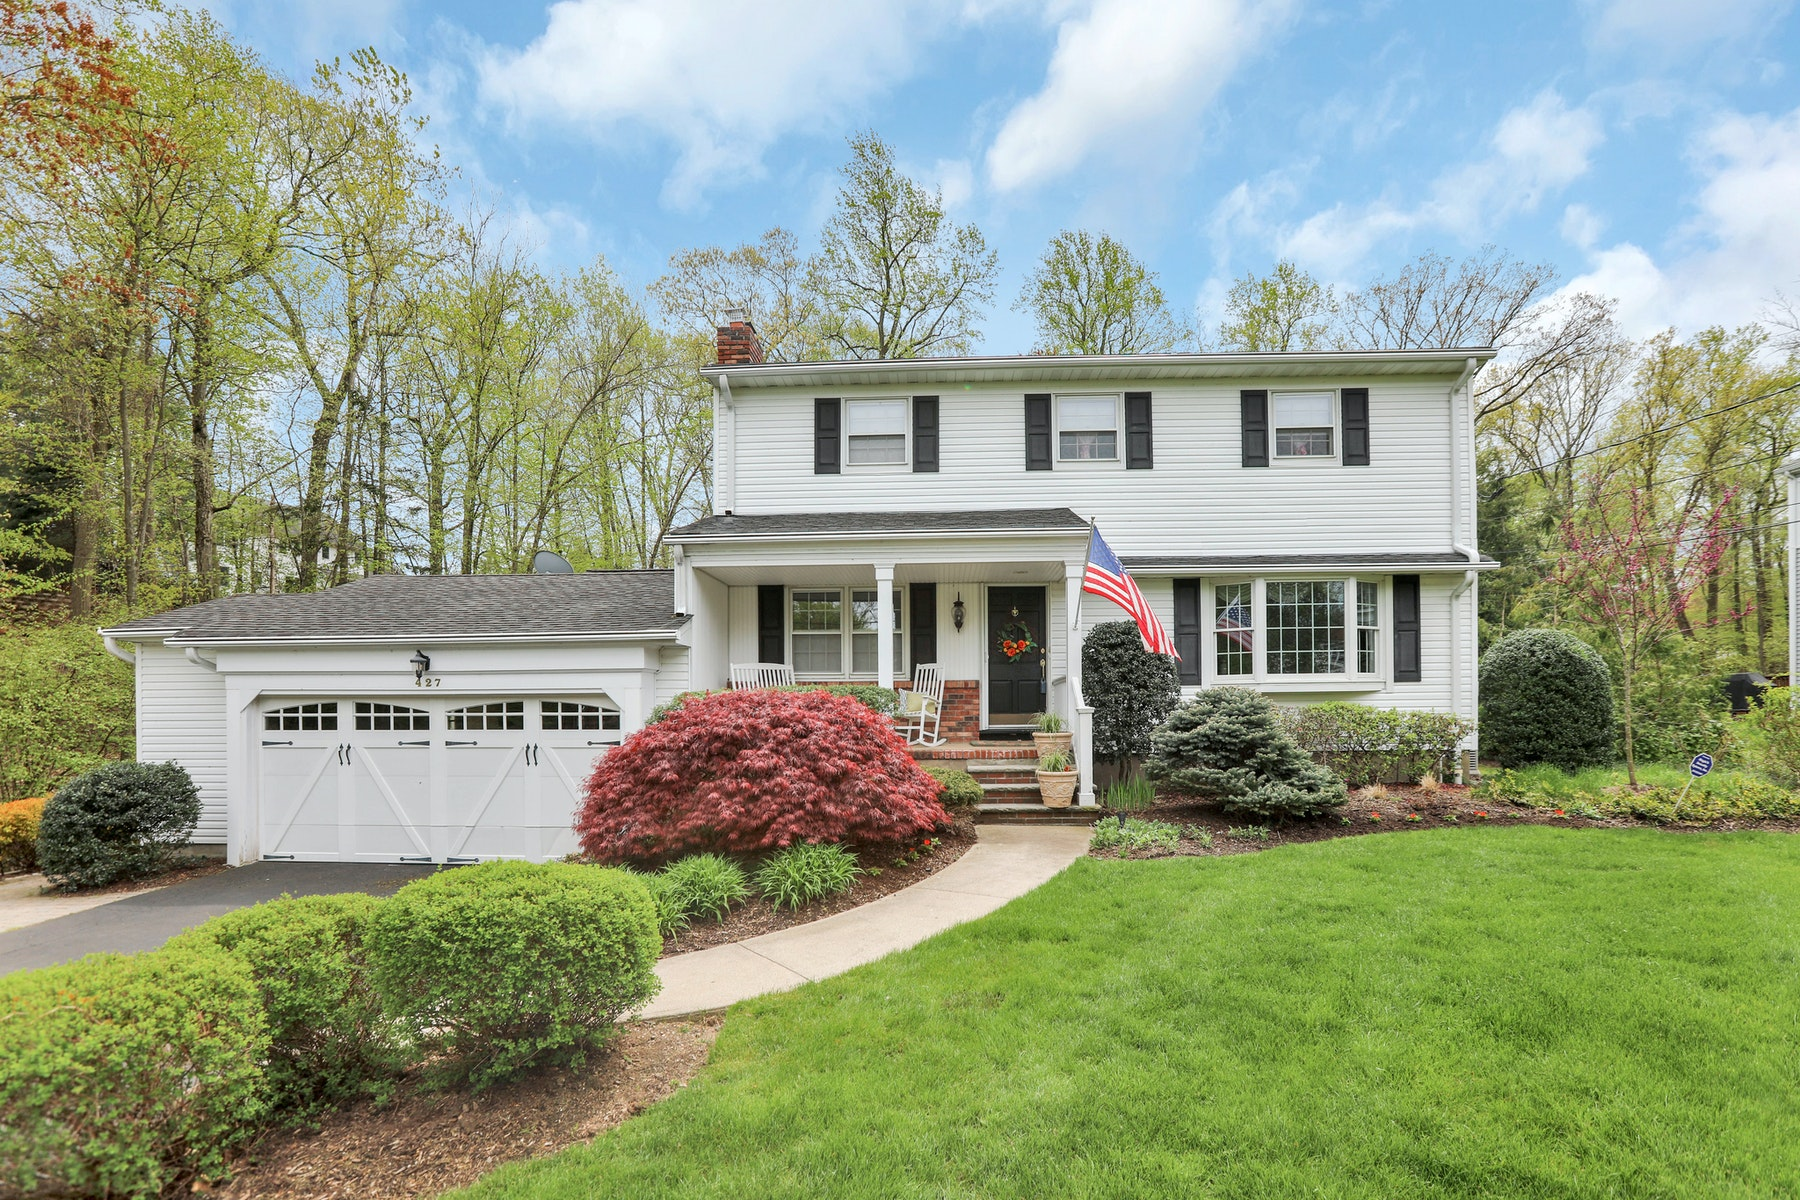 Single Family Homes for Sale at Country Living At Its Best 427 Kelly Court Wyckoff, New Jersey 07481 United States